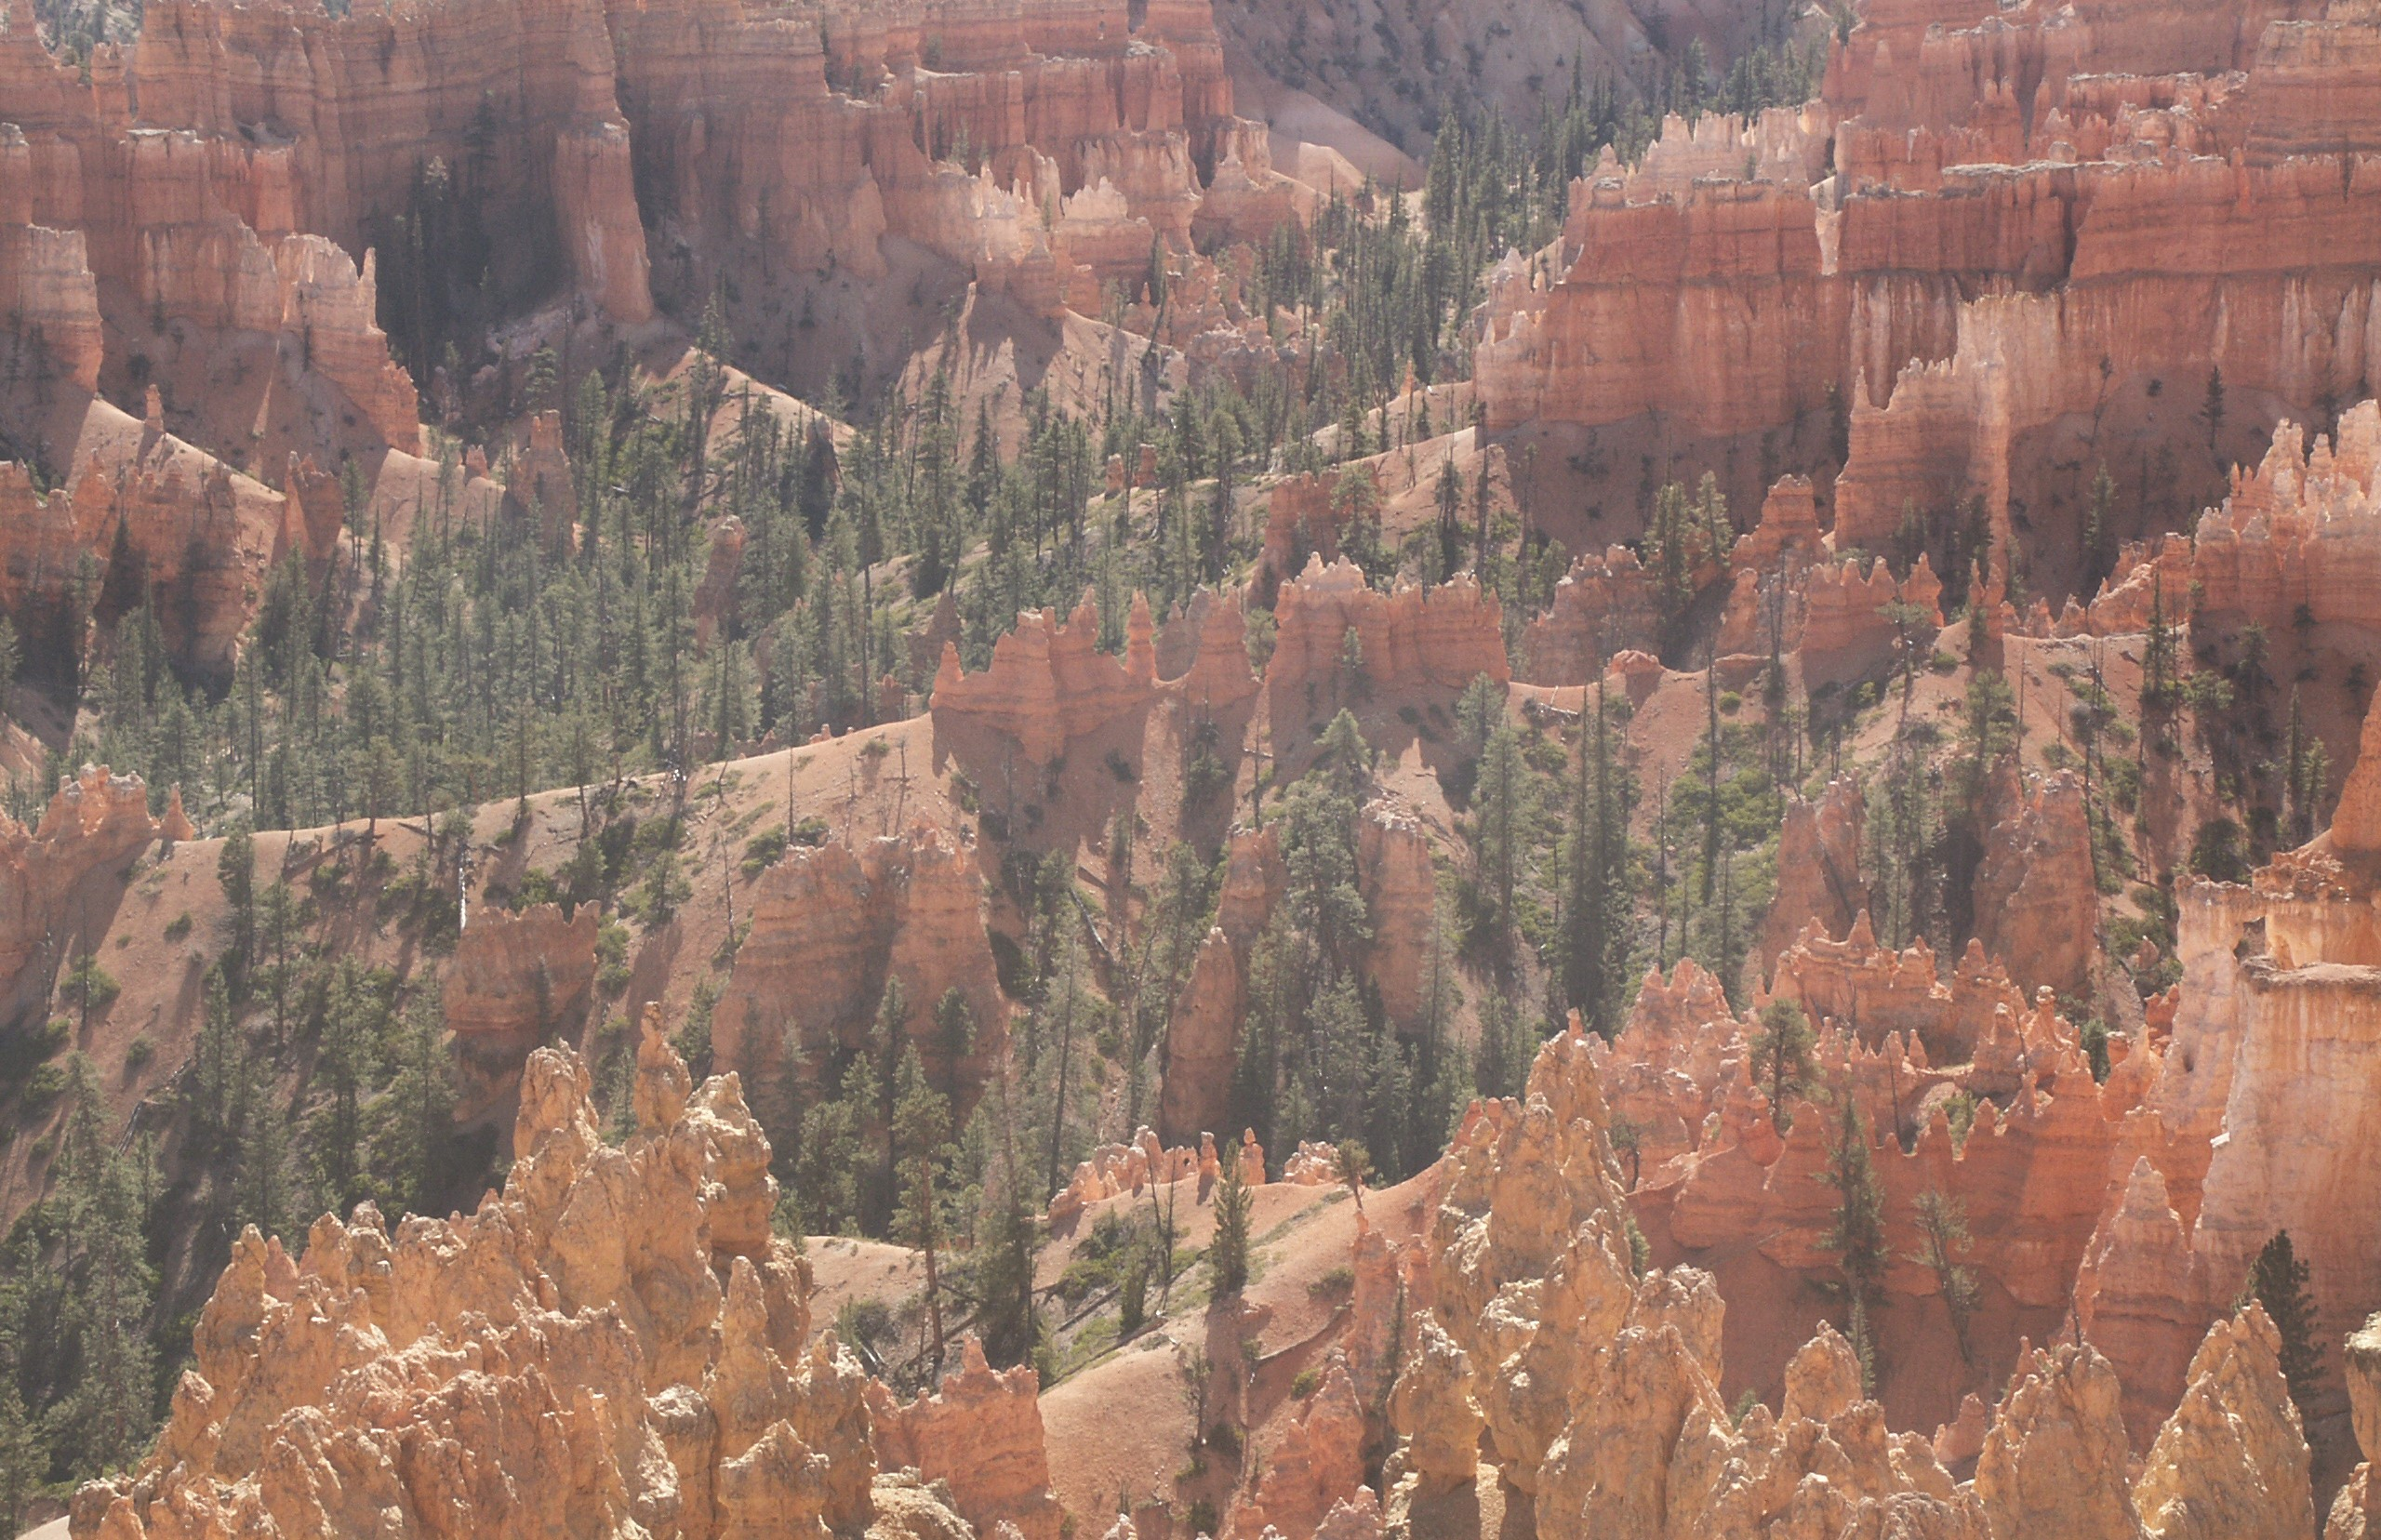 Ponderosa pine in Bryce Canyon National Park